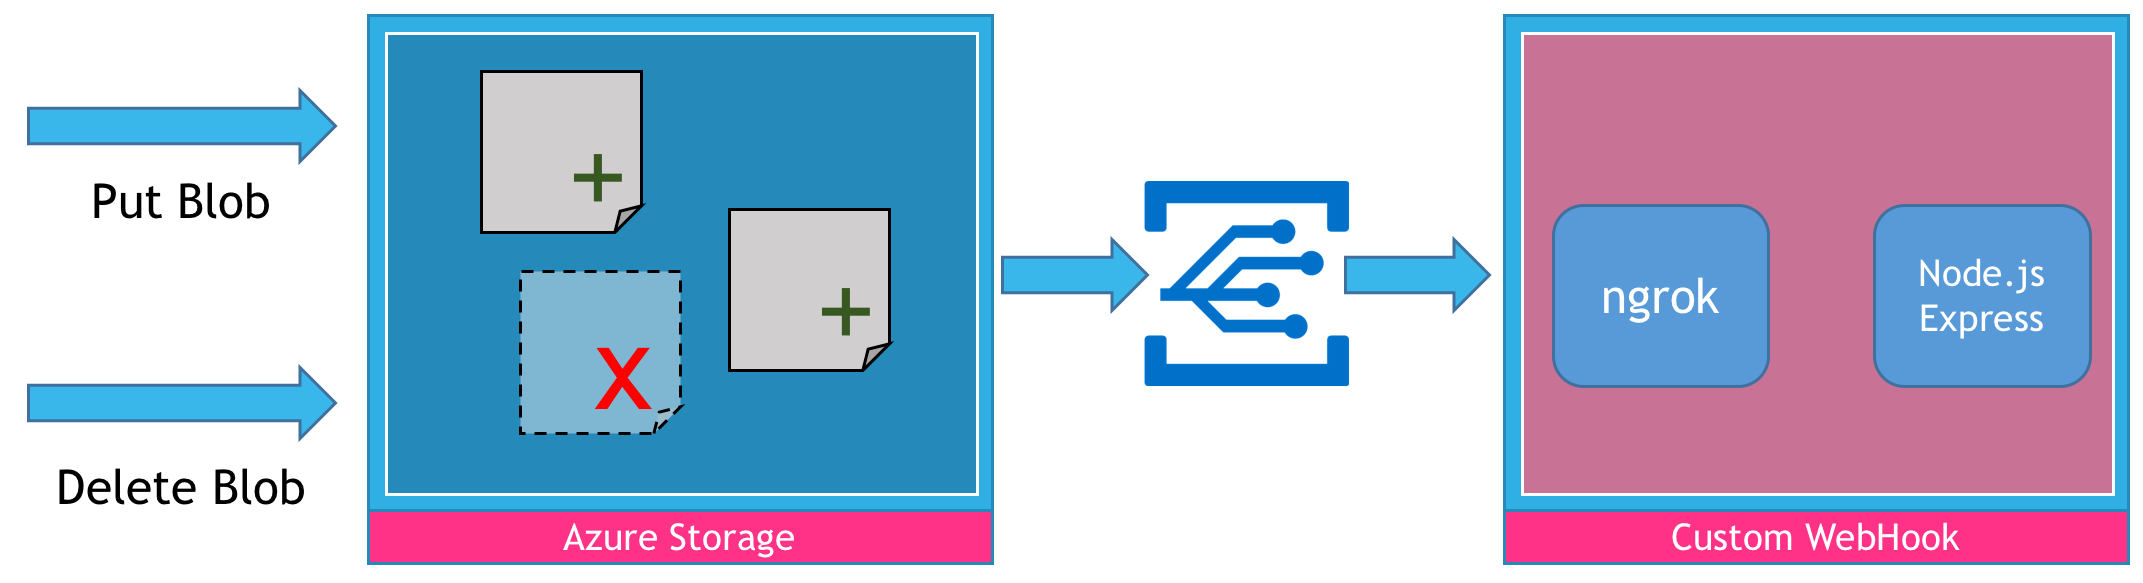 Tutorial: Exploring Azure Event Grid with Custom Webhooks